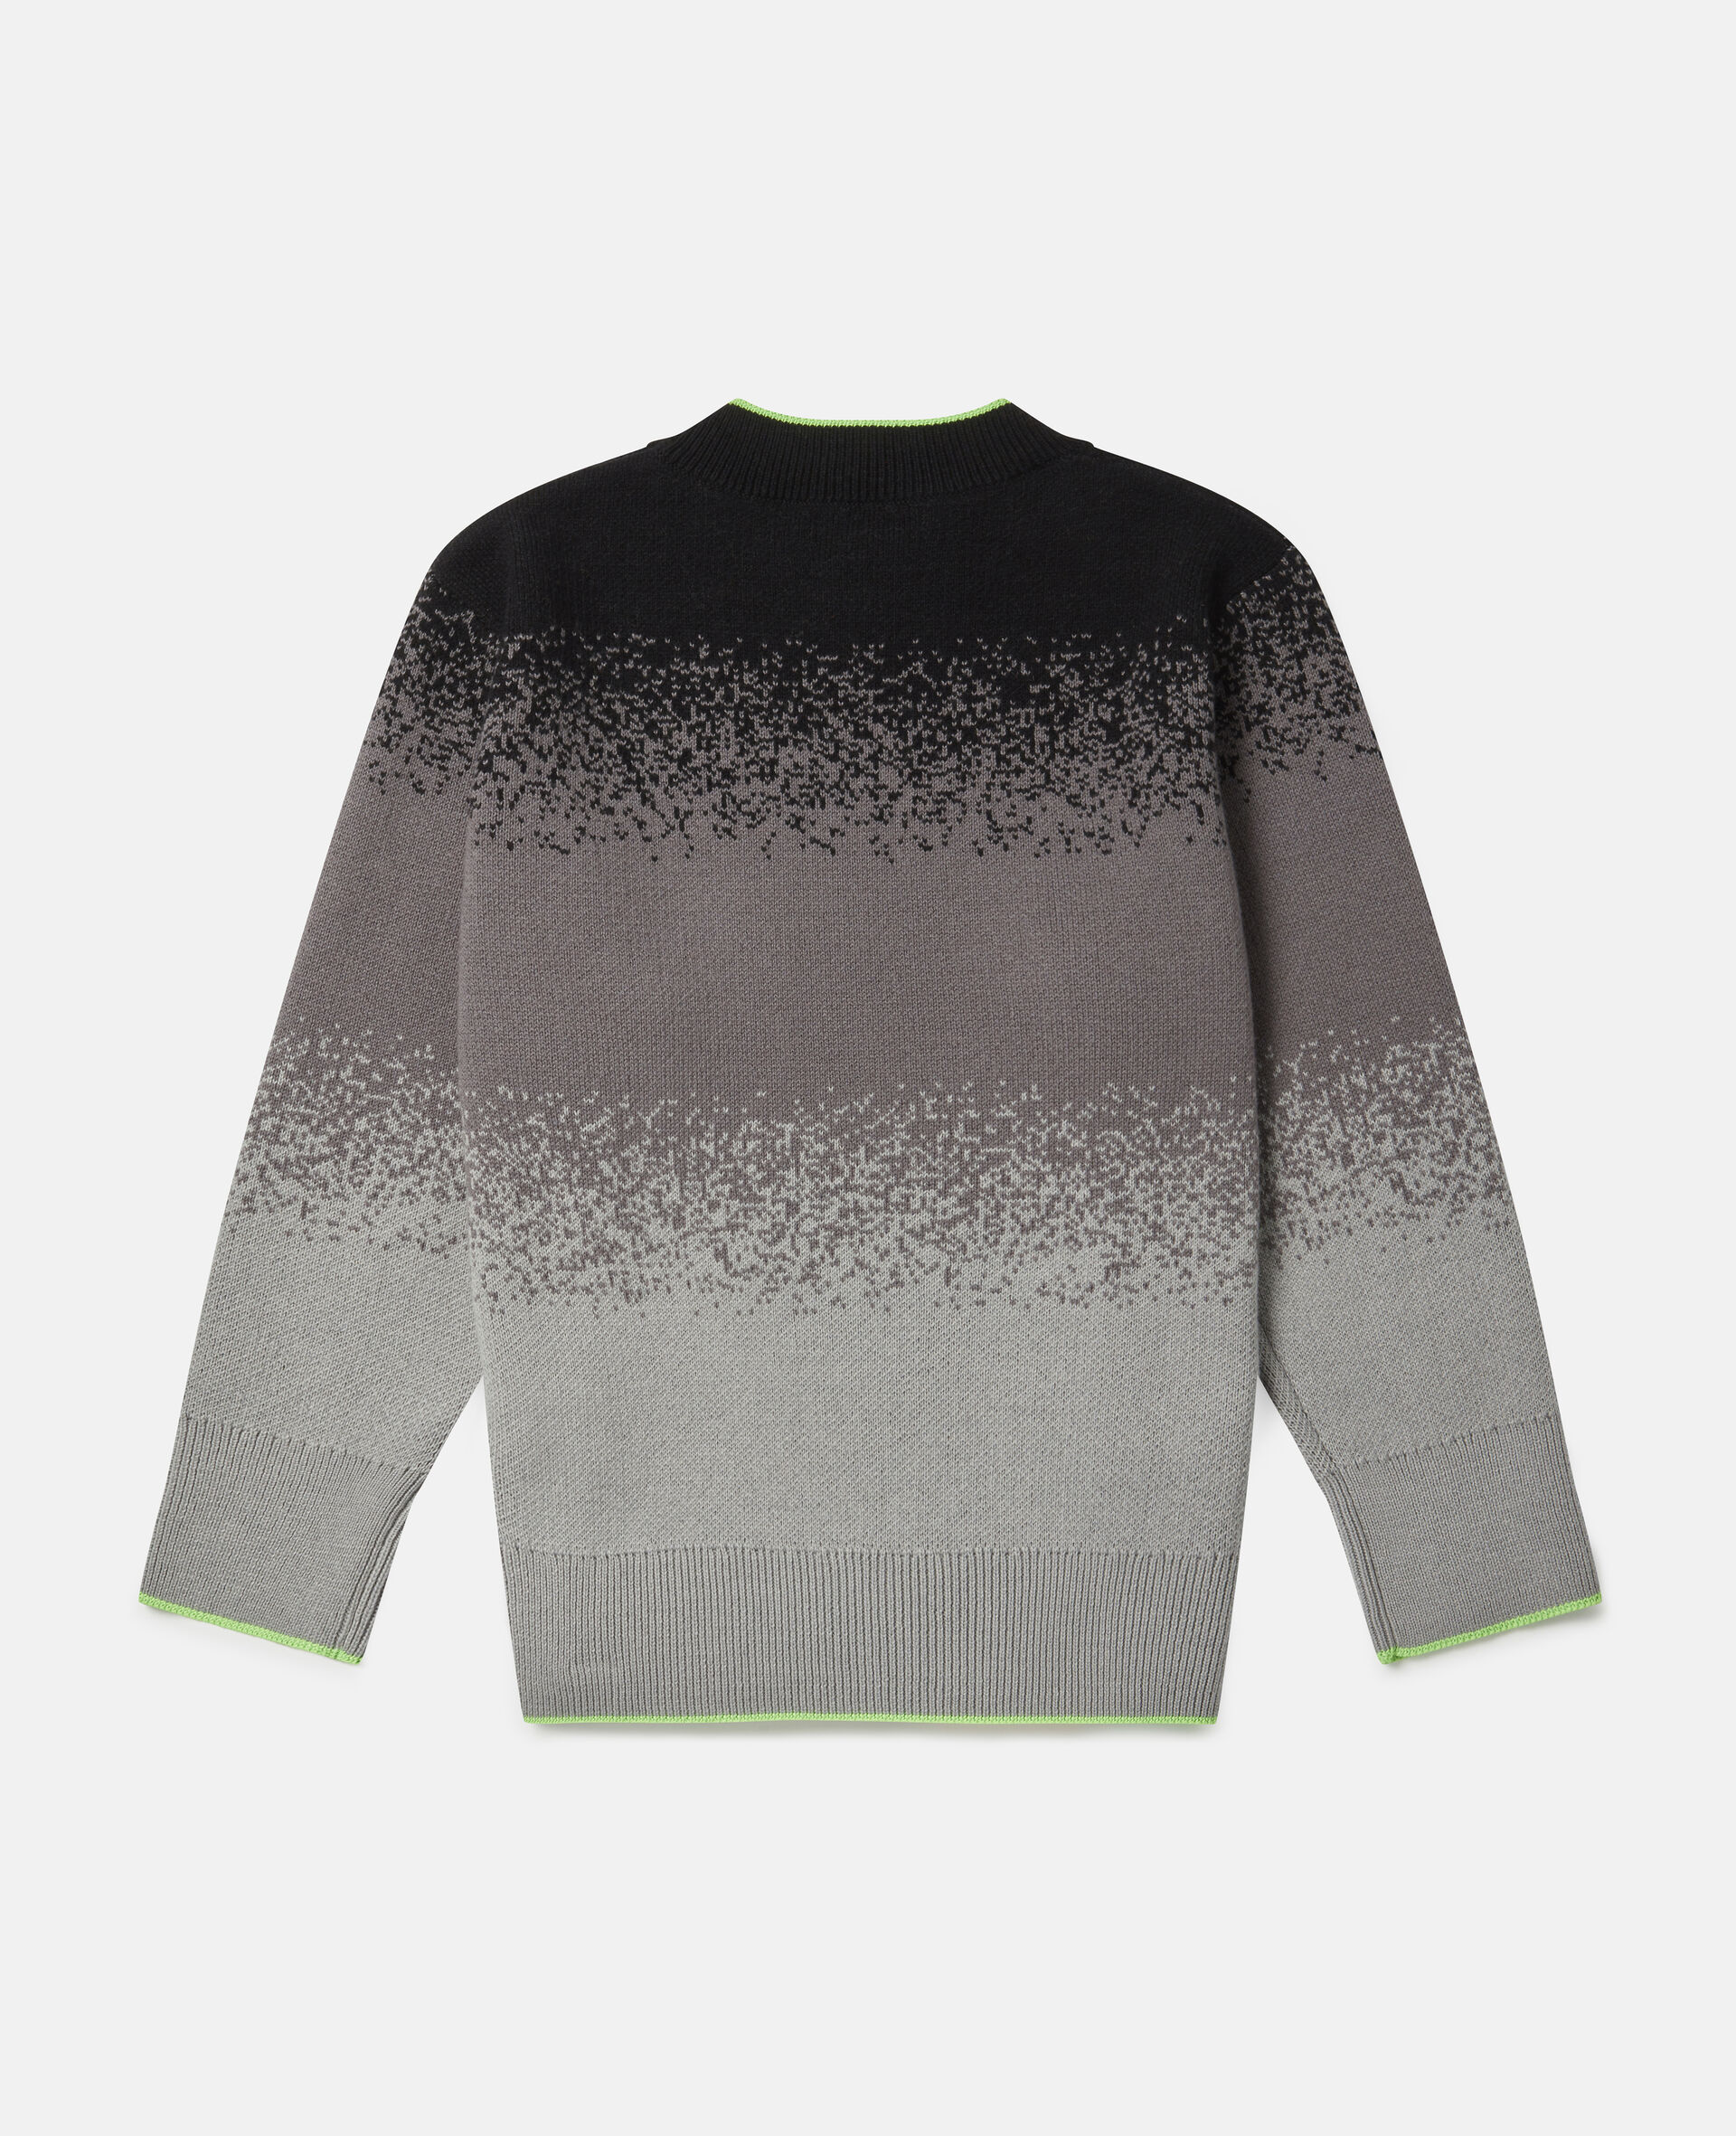 Spray Painted Effect Oversized Knit Jumper-Grey-large image number 3